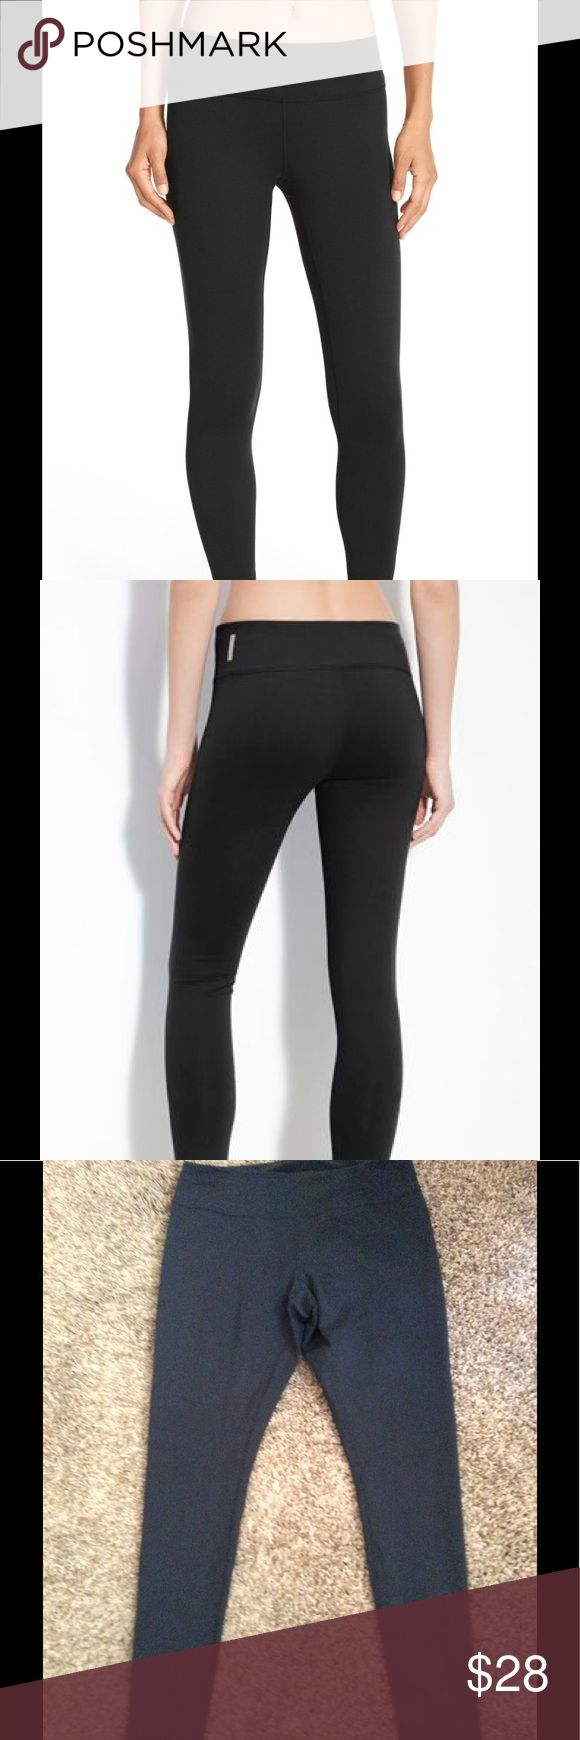 Zella Live In Leggings Great leggings for work out or lounging. Nice stretch! No stains of rips or fading. Zella Pants Leggings